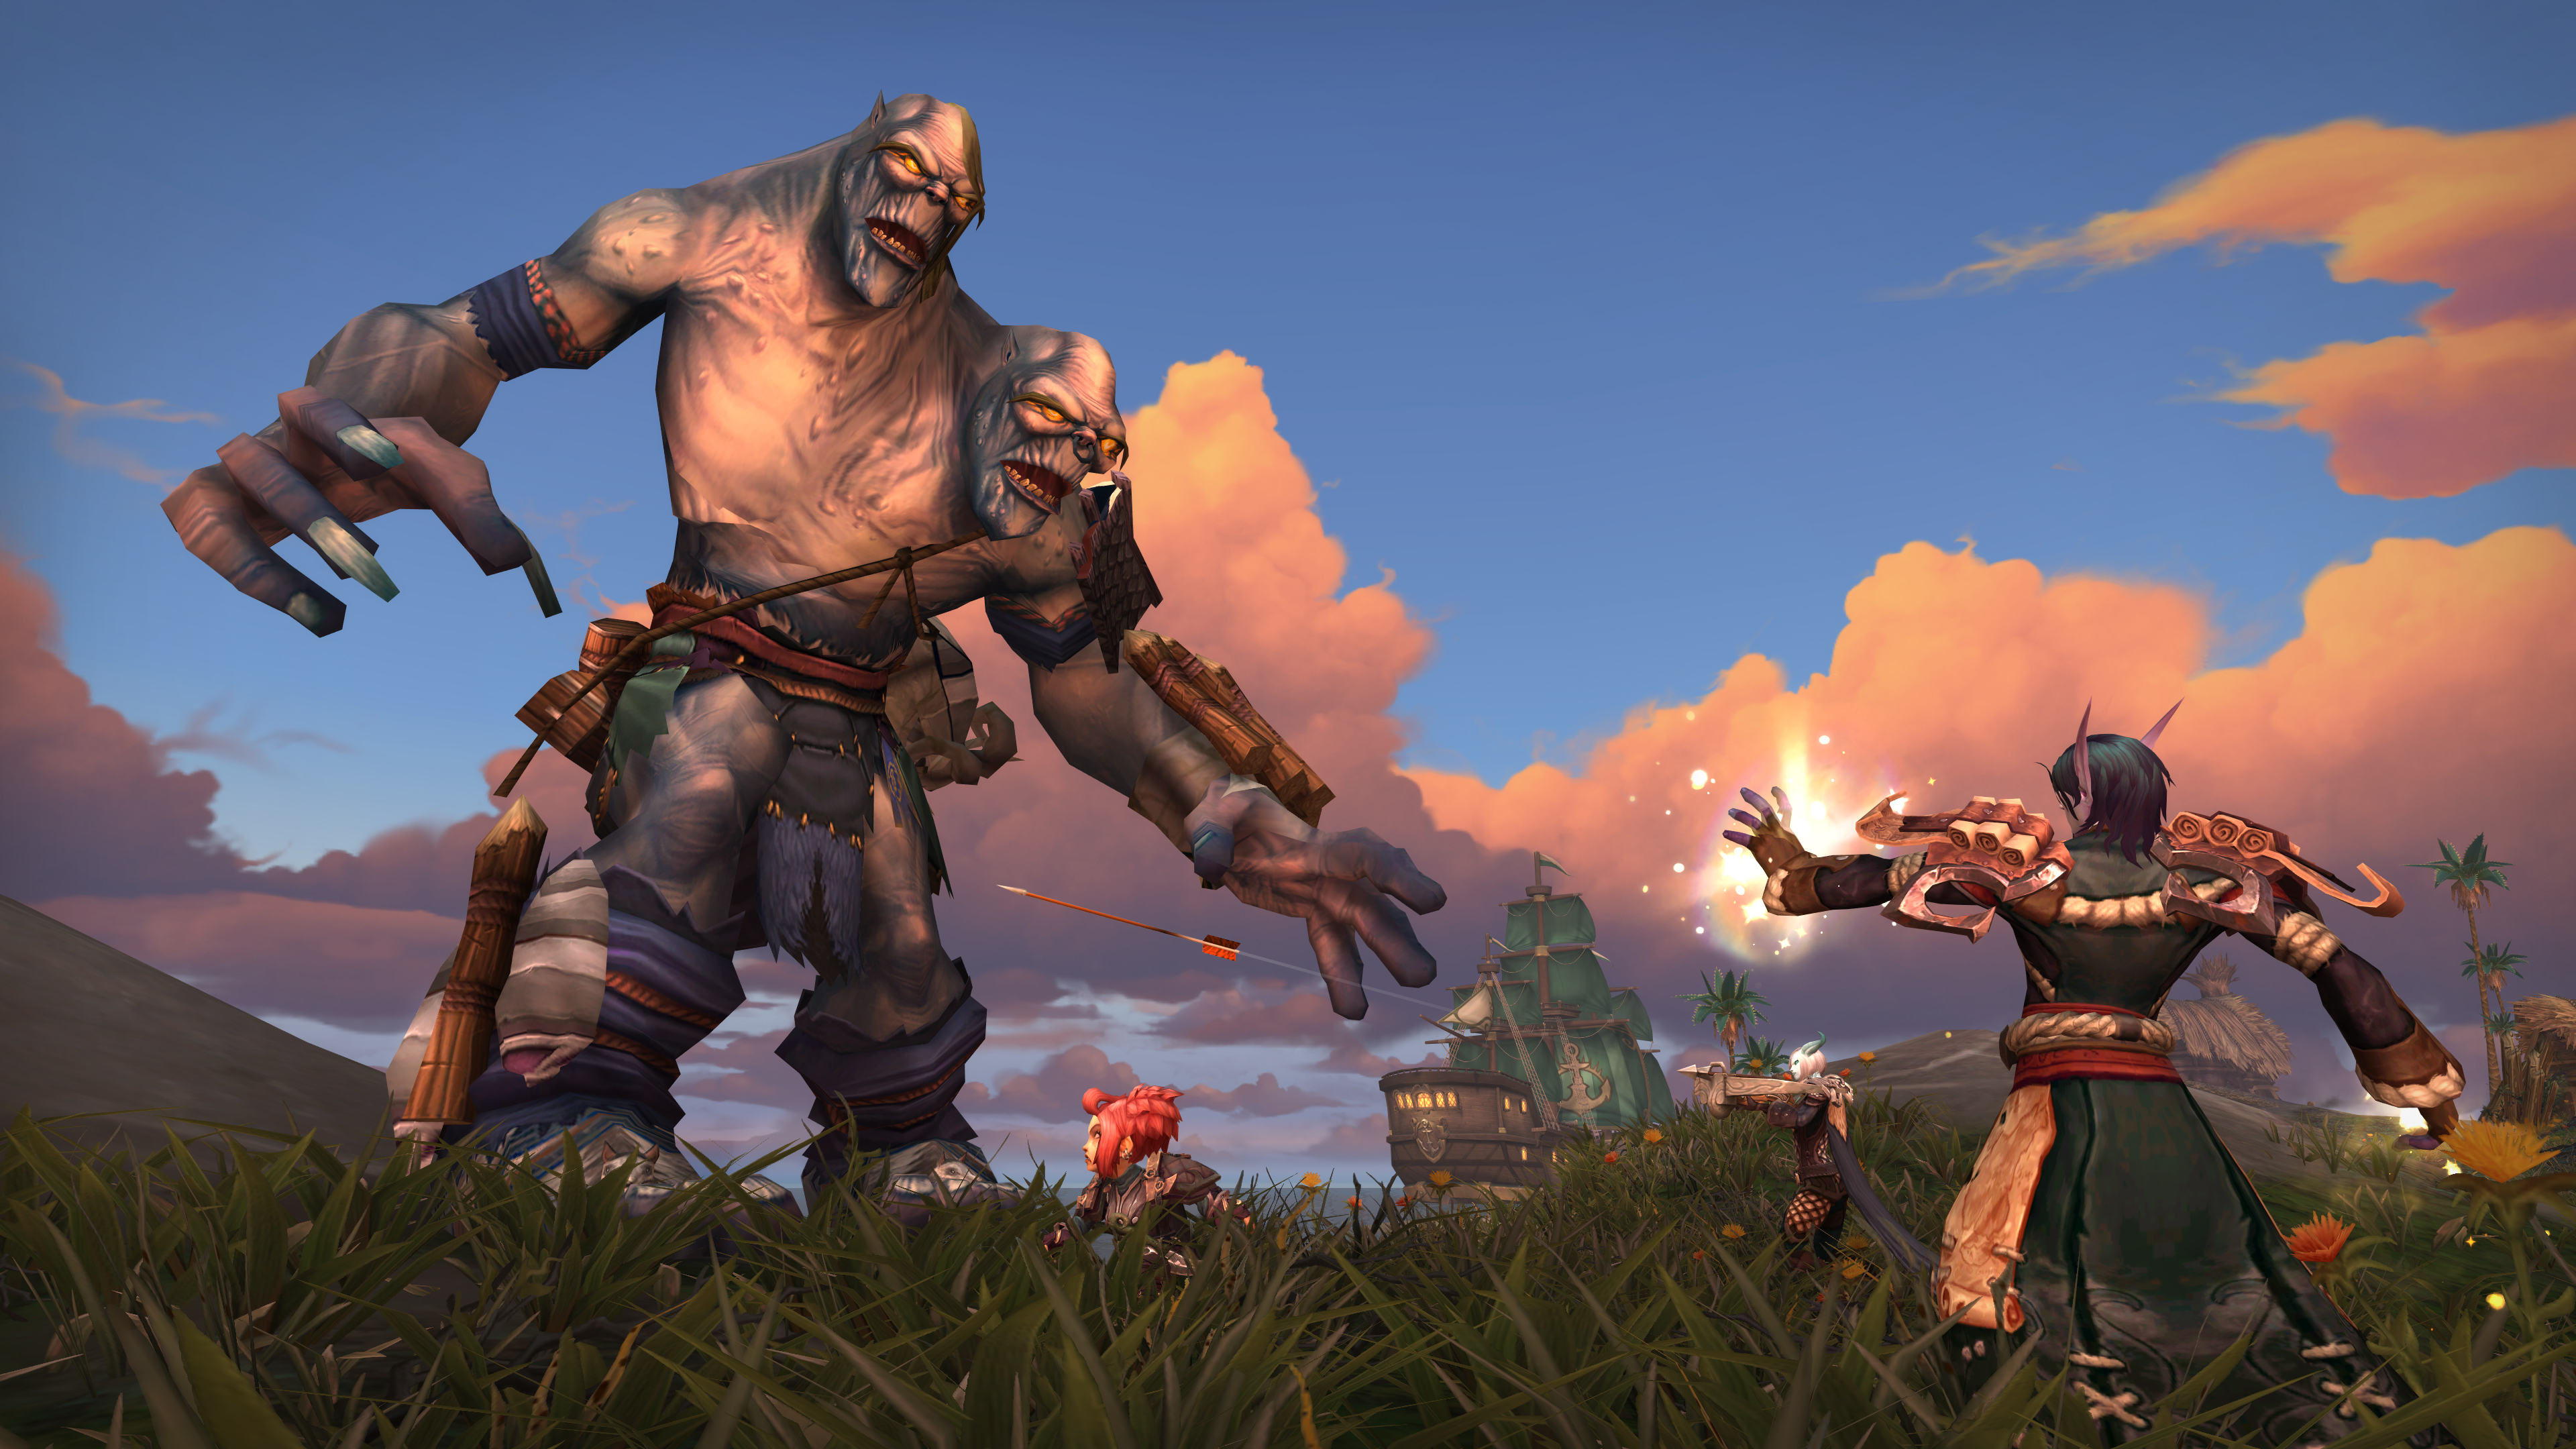 World of Warcraft player fighting two-head ogre